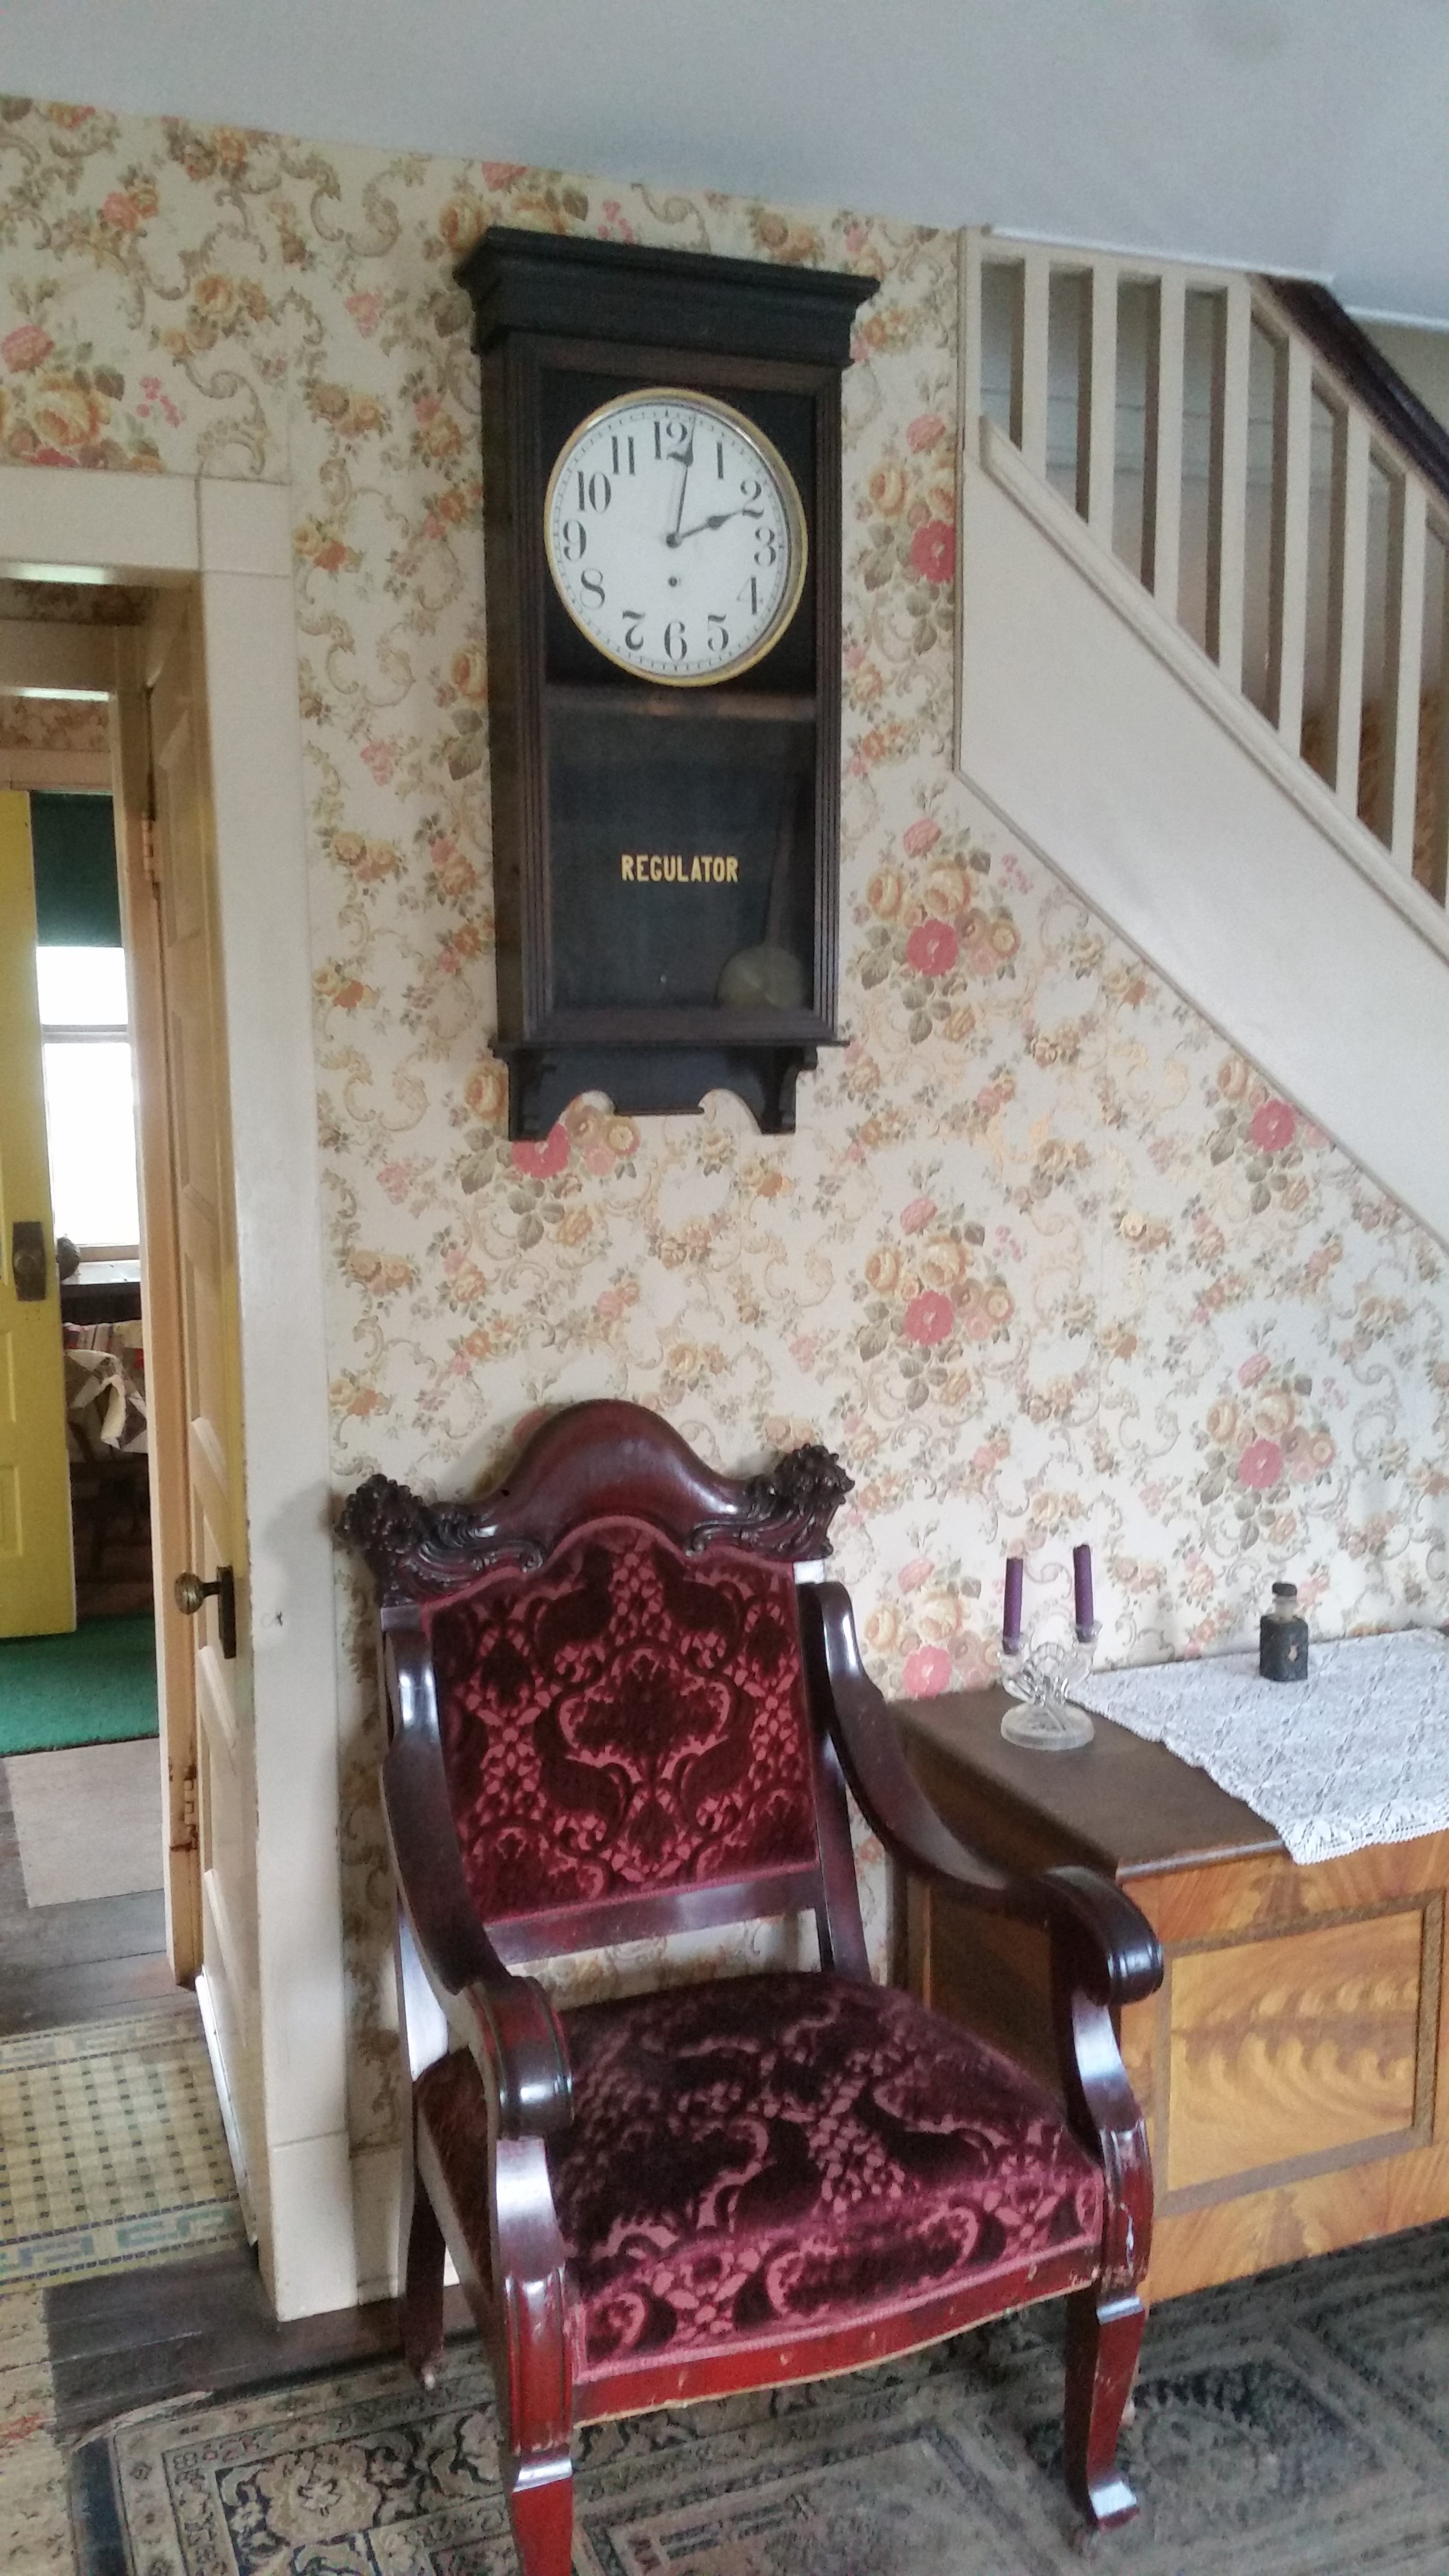 clock on wall above chair